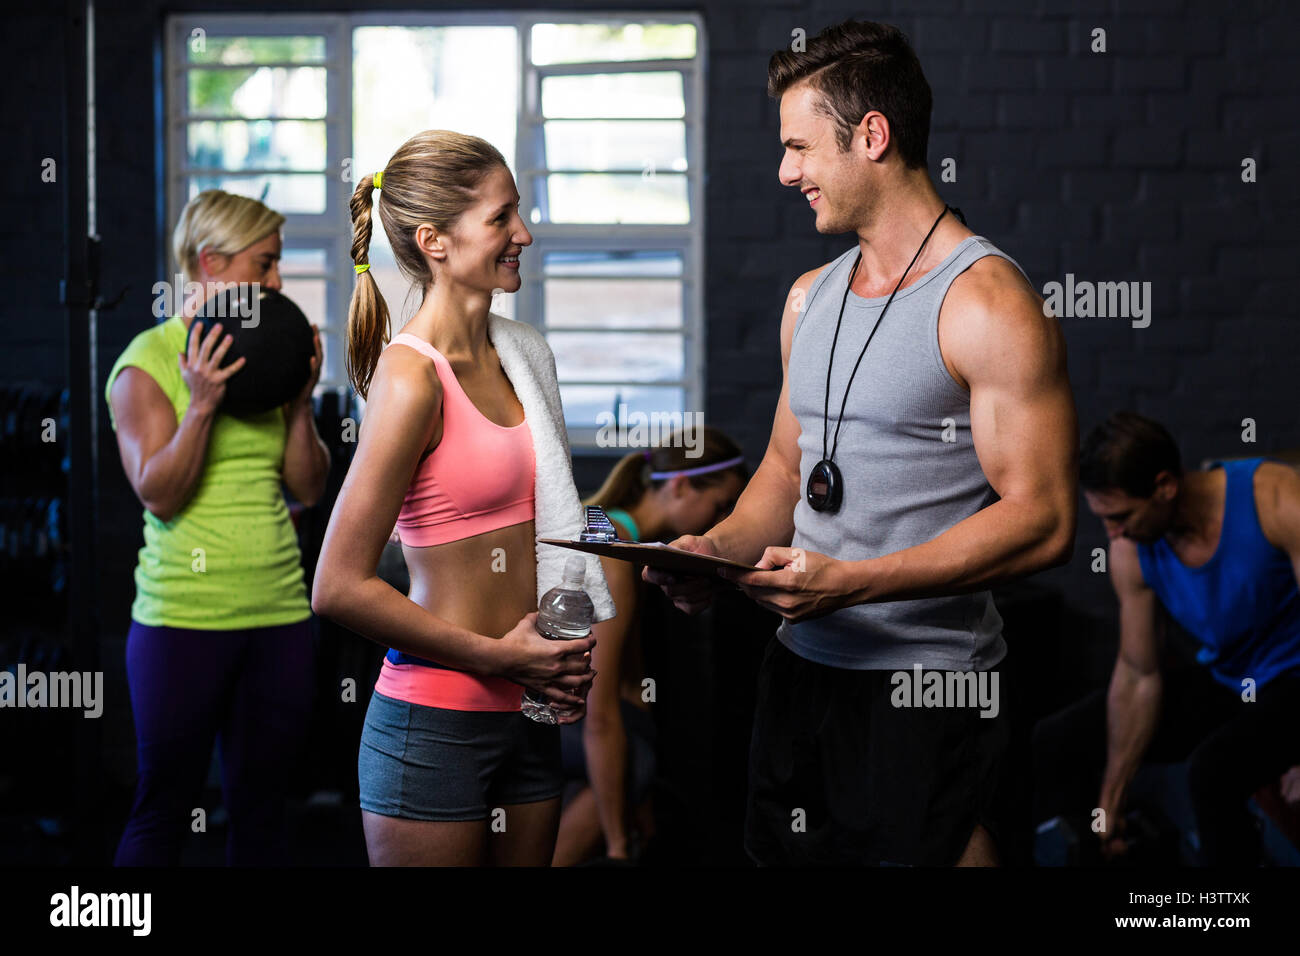 Woman talking with trainer in gym Stock Photo